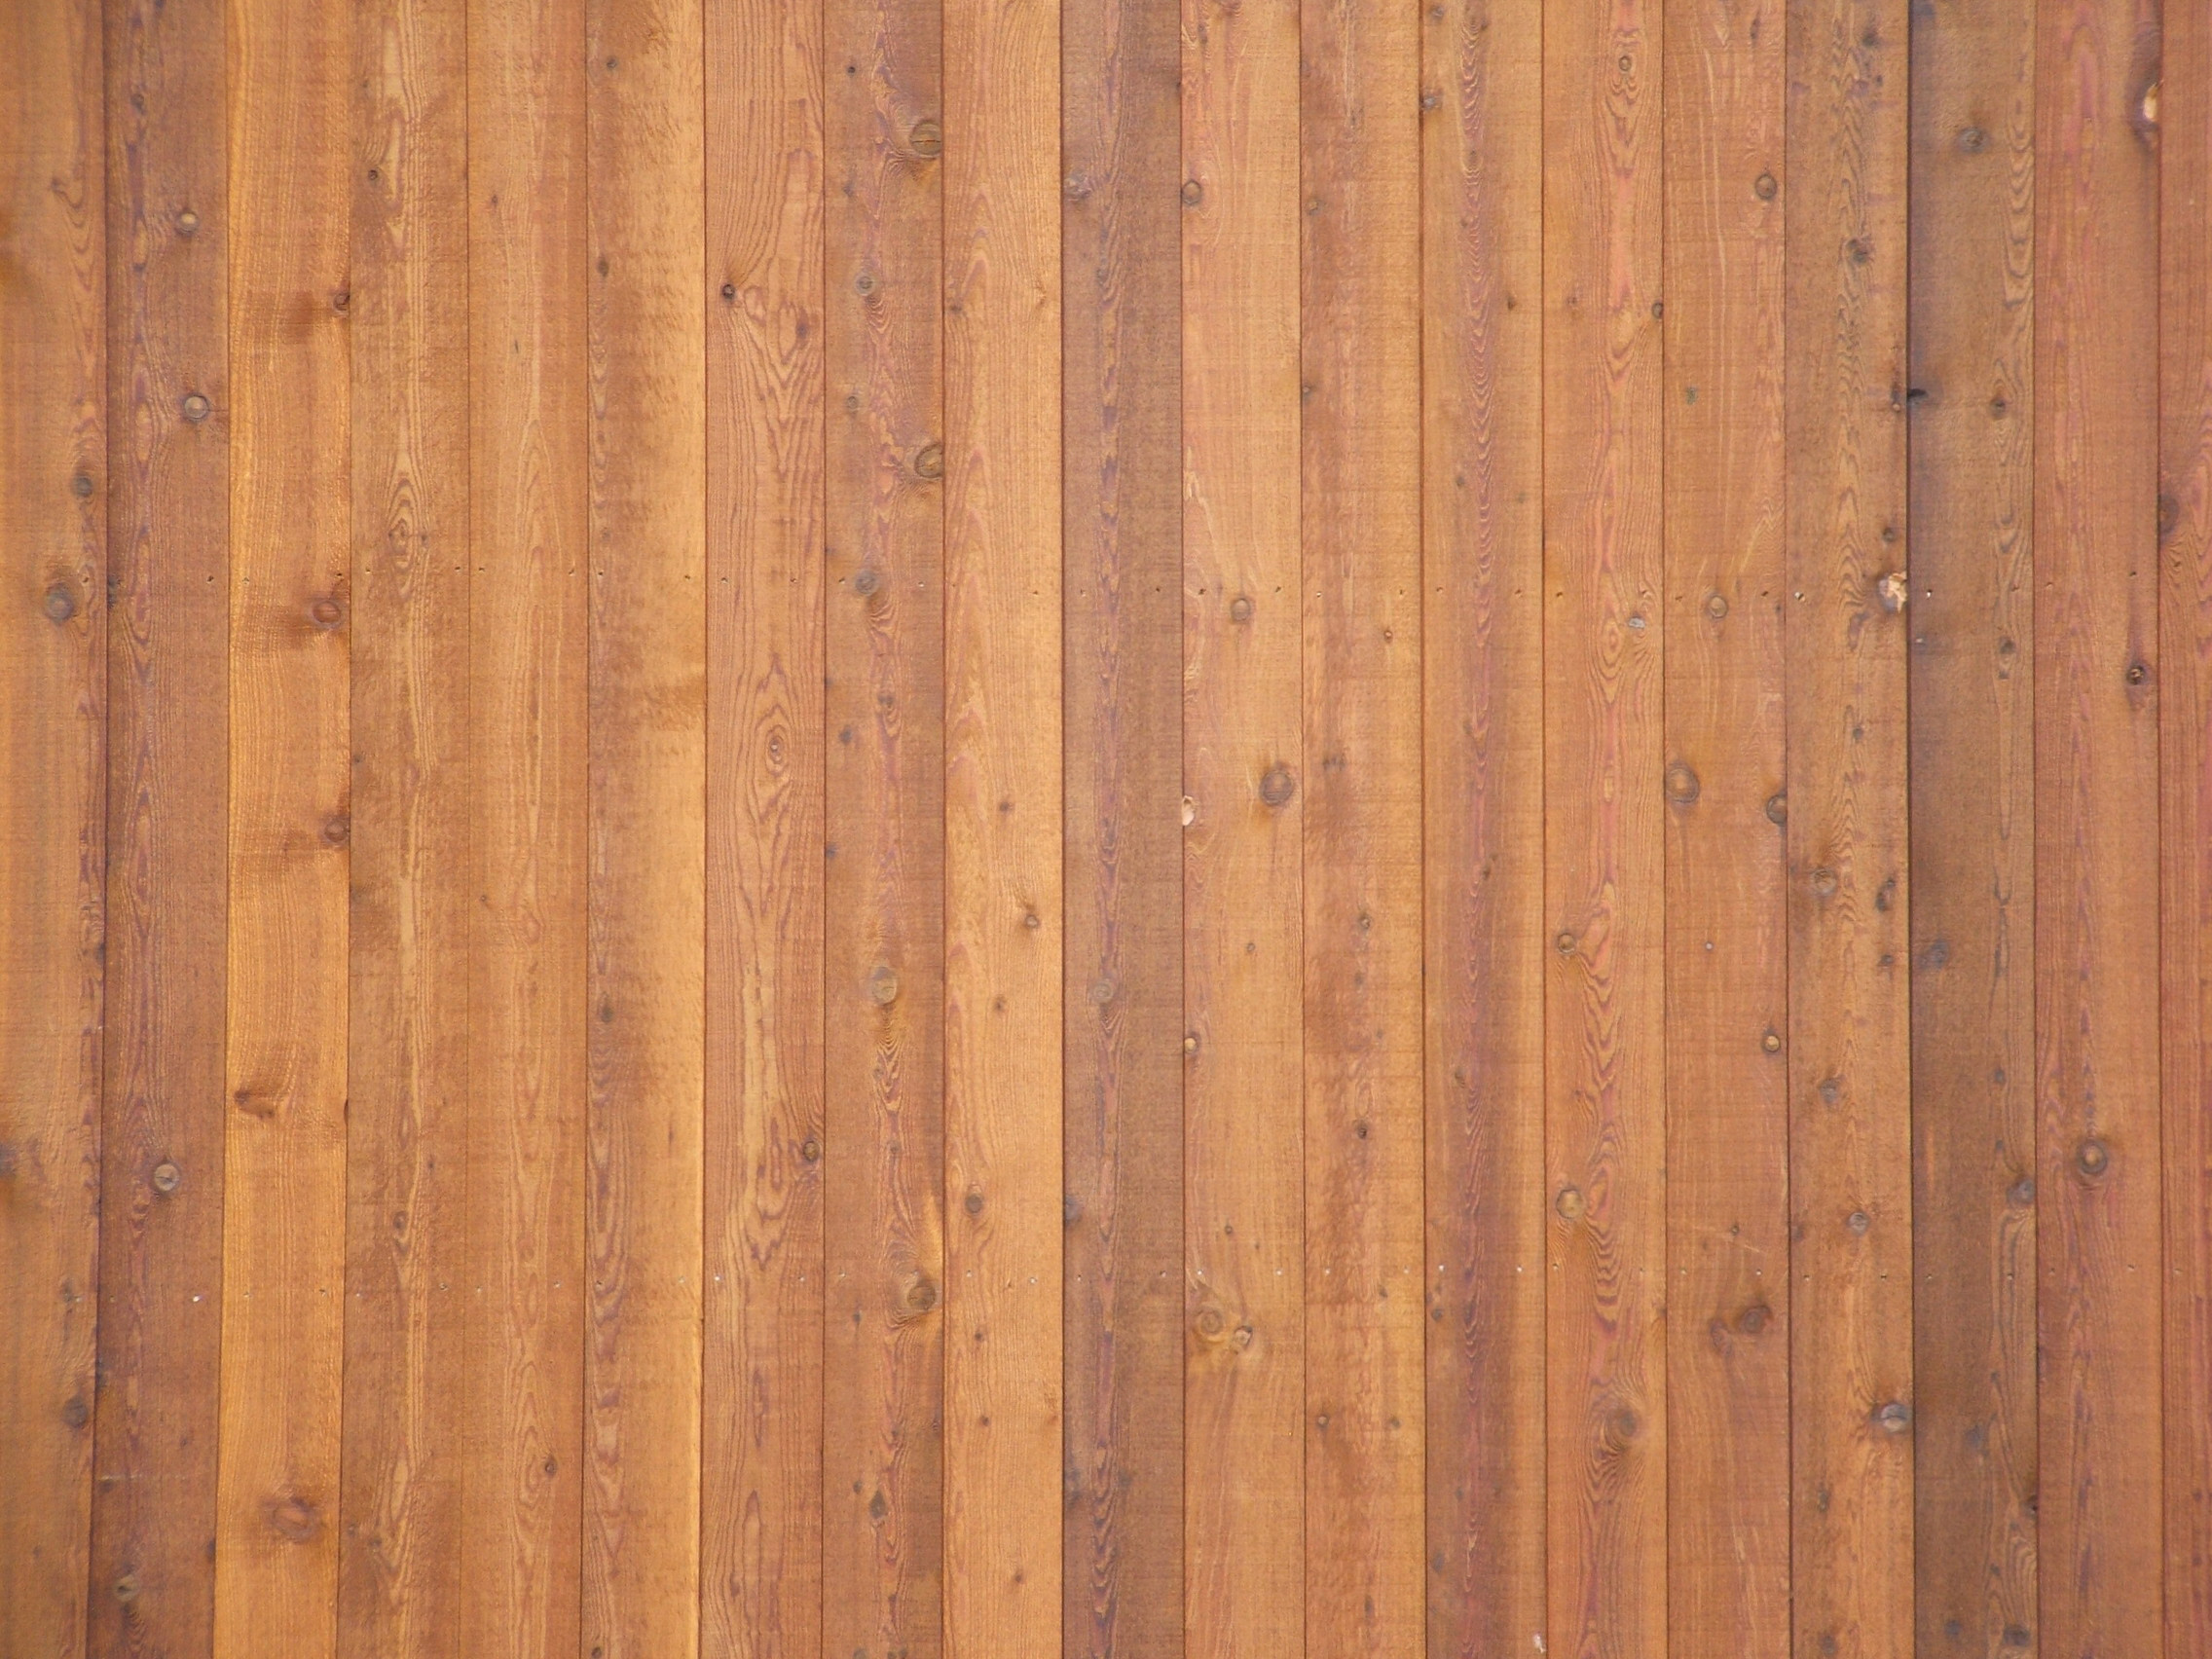 Wood plank wallpaper 33 images for Wood wallpaper for walls